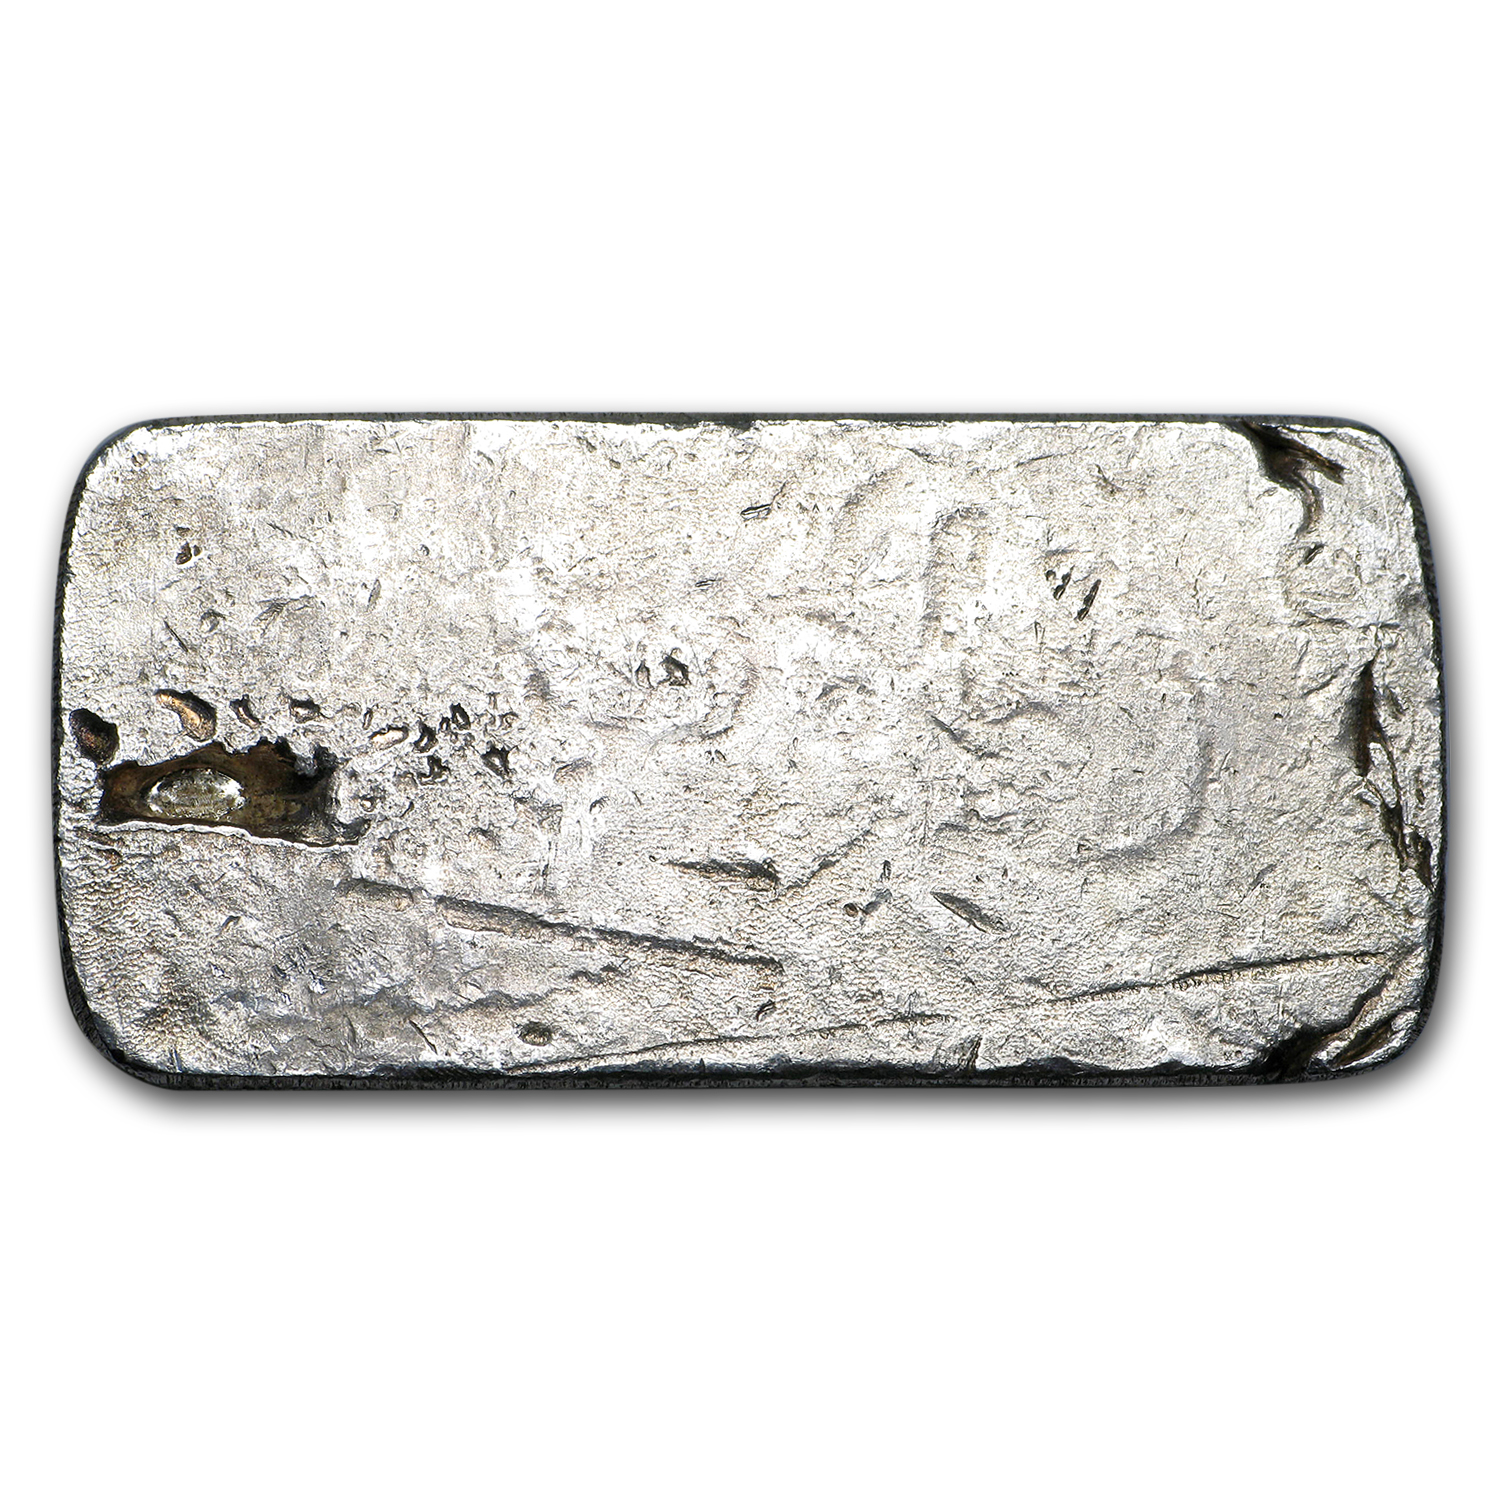 5 oz Silver Bar - Nevada Coin Mart Ingot